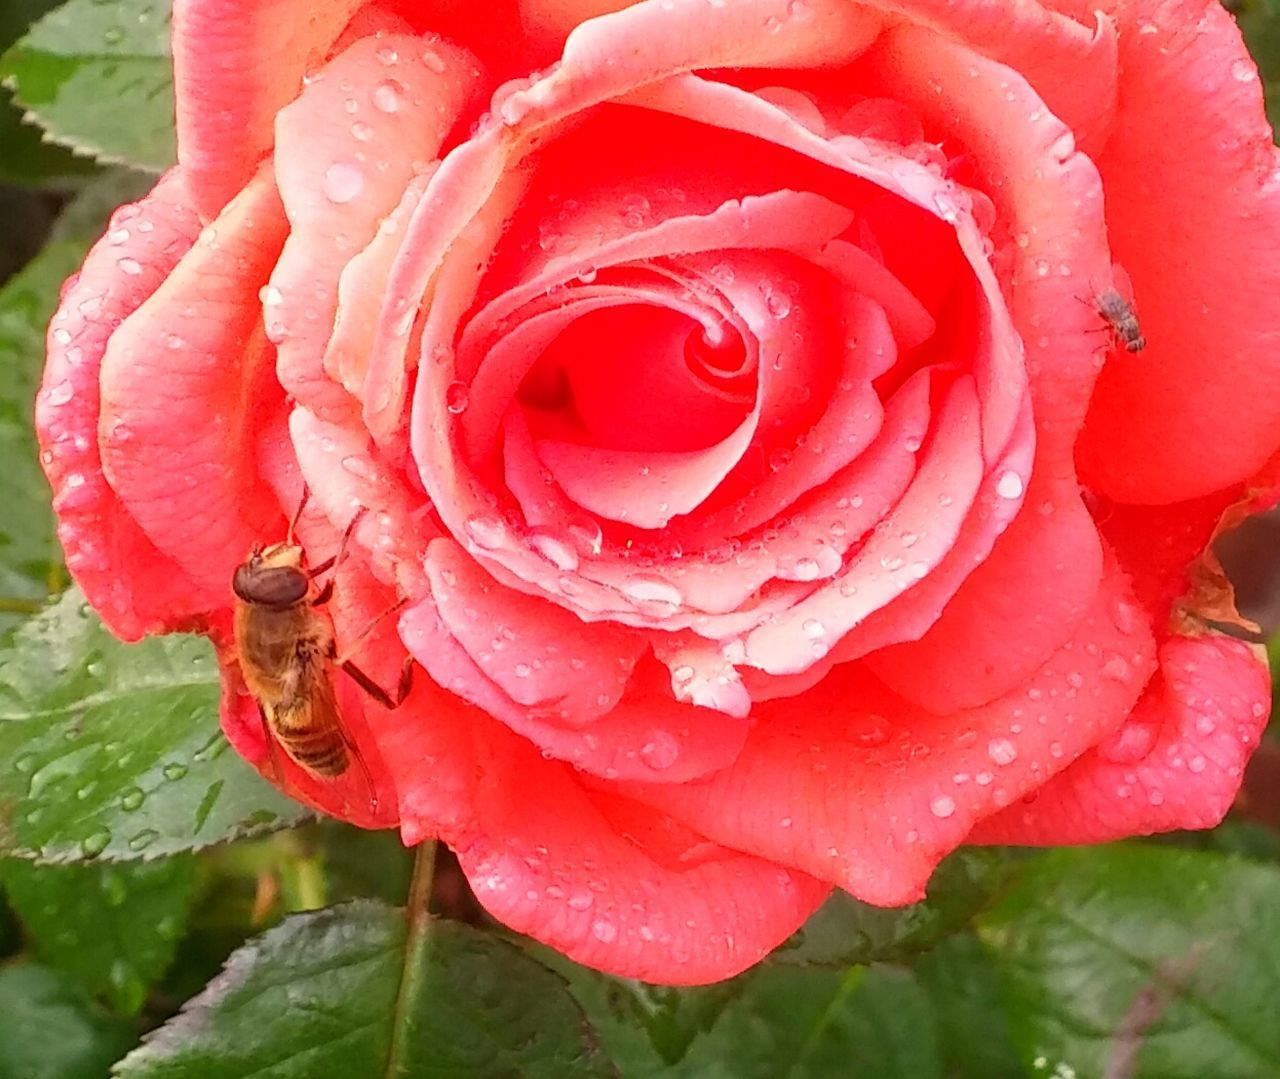 beauty in nature, drop, nature, flower, growth, water, wet, rose - flower, petal, freshness, plant, fragility, no people, close-up, outdoors, red, flower head, raindrop, day, blooming